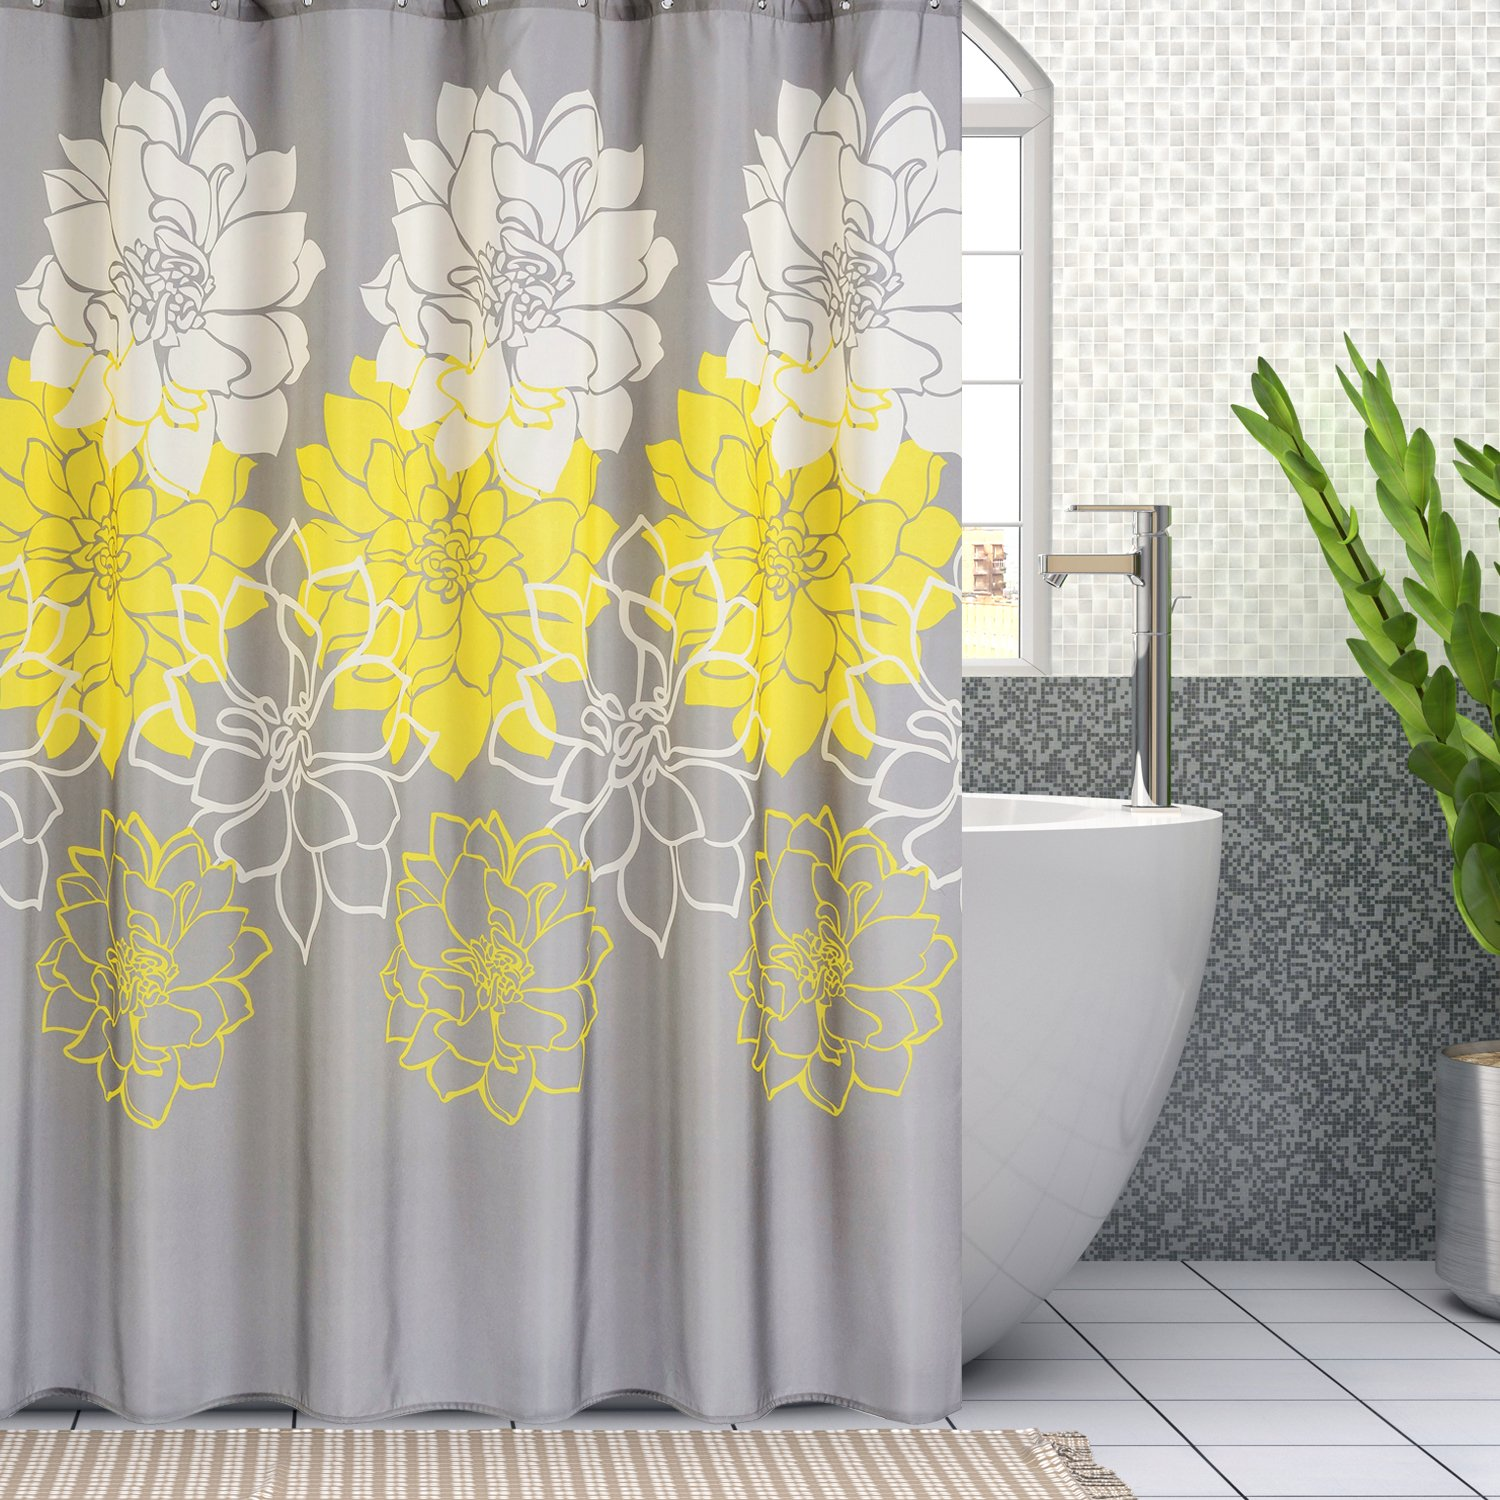 resistant polyester curtain shower cloth best liner curtains eco com bathroom amazon s mildew quality fabric water lattye waterproof dp washable friendly x hotel